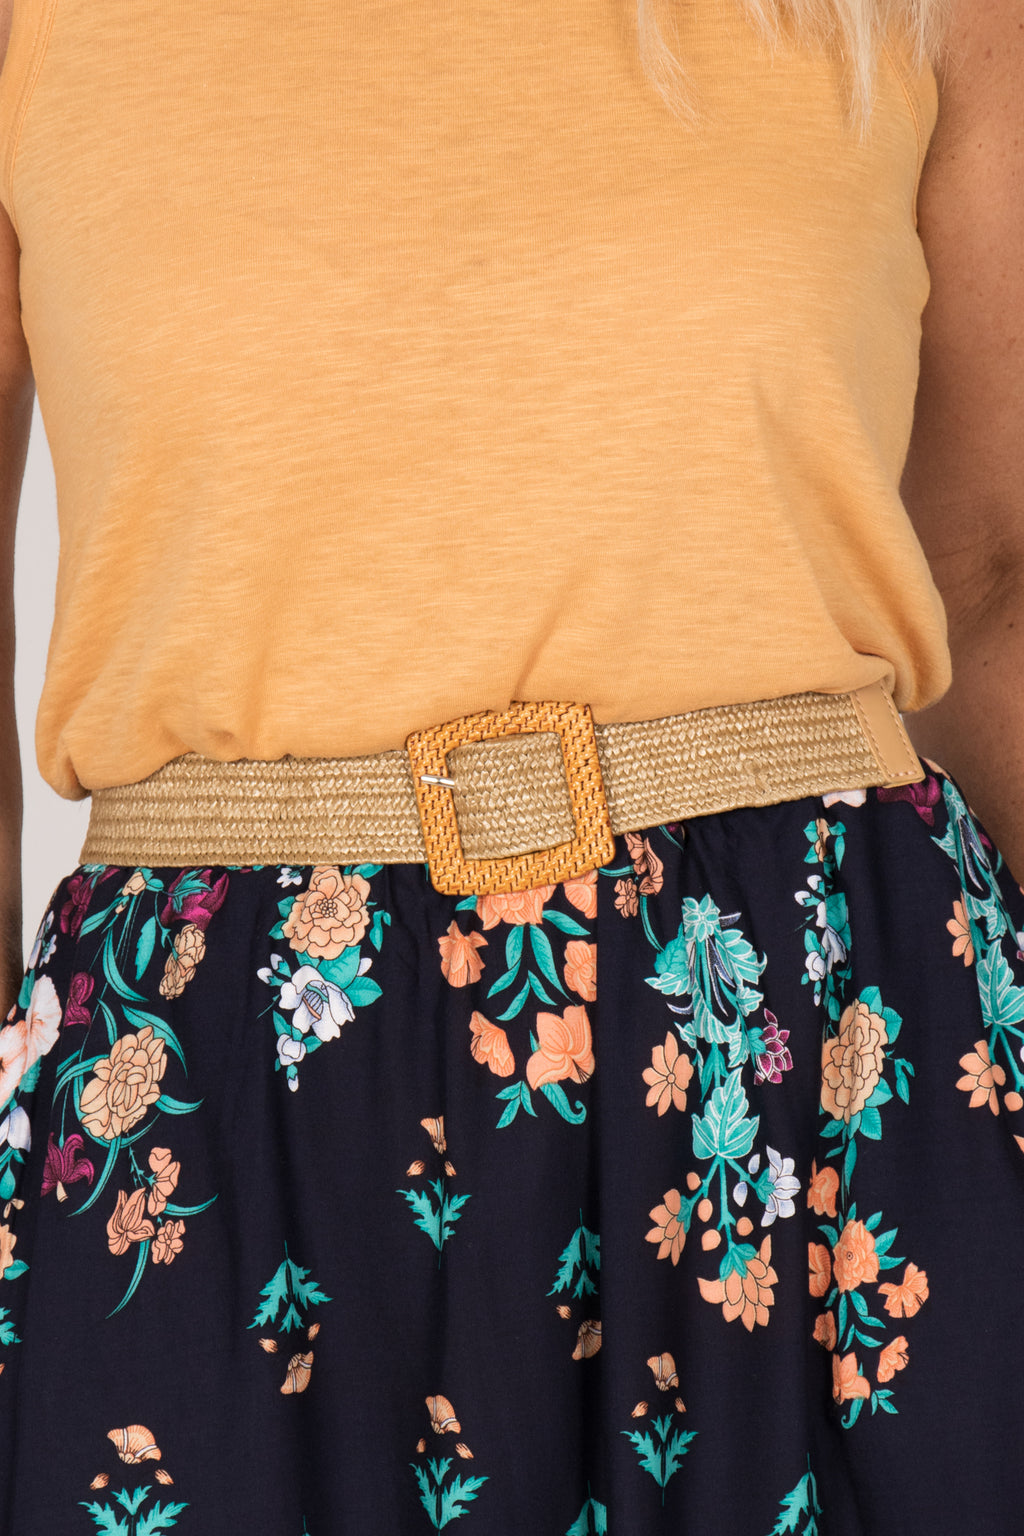 Jessa Stretch Belt in Natural/Square